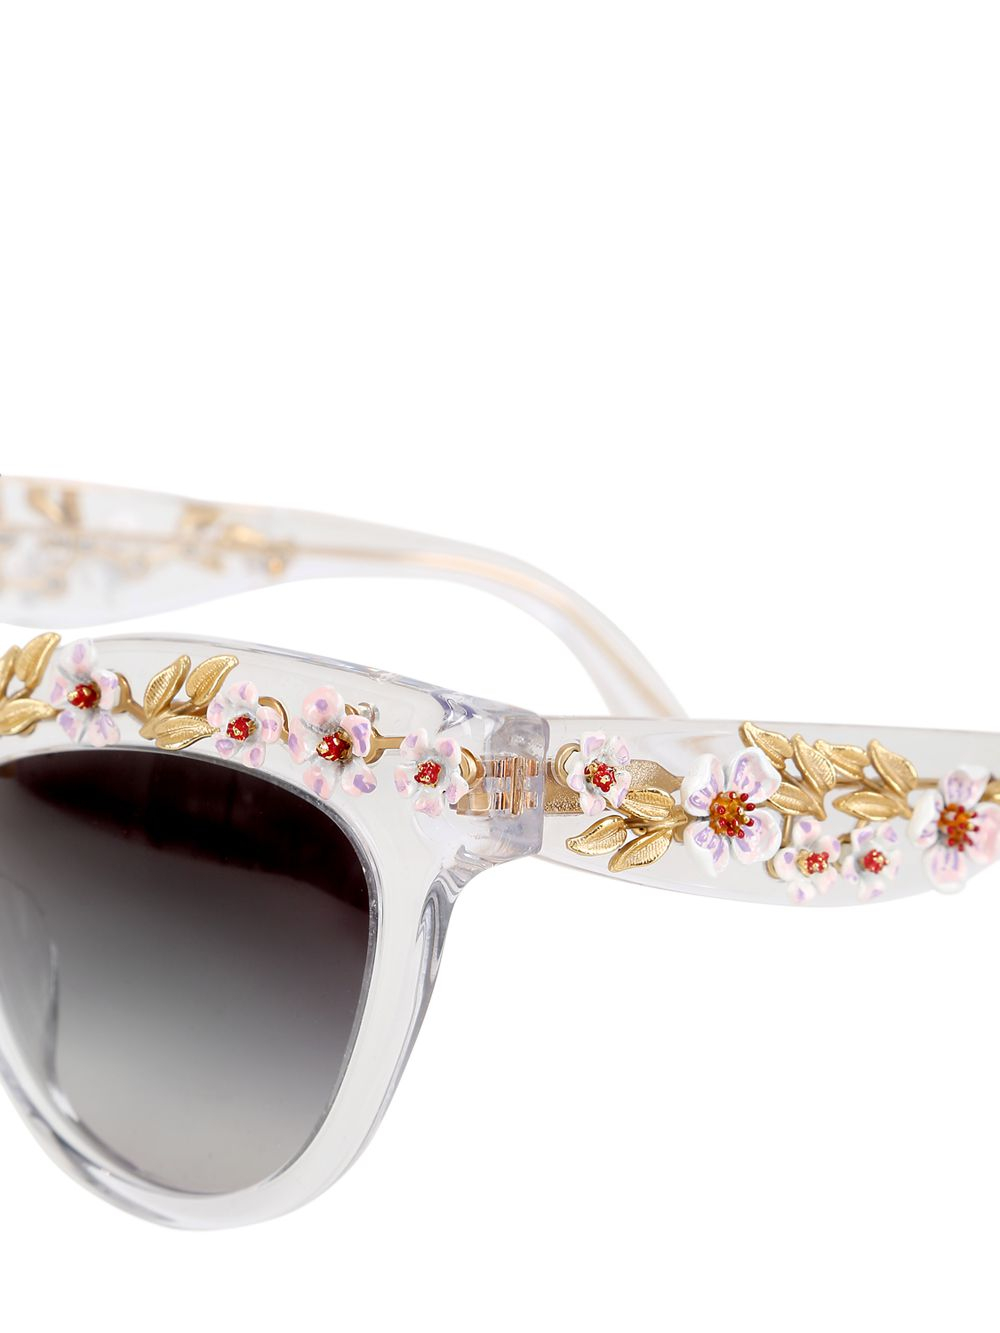 Dolce Gabbana Cat Eye Sunglasses  dolce gabbana flowers embellished cat eye sunglasses lyst